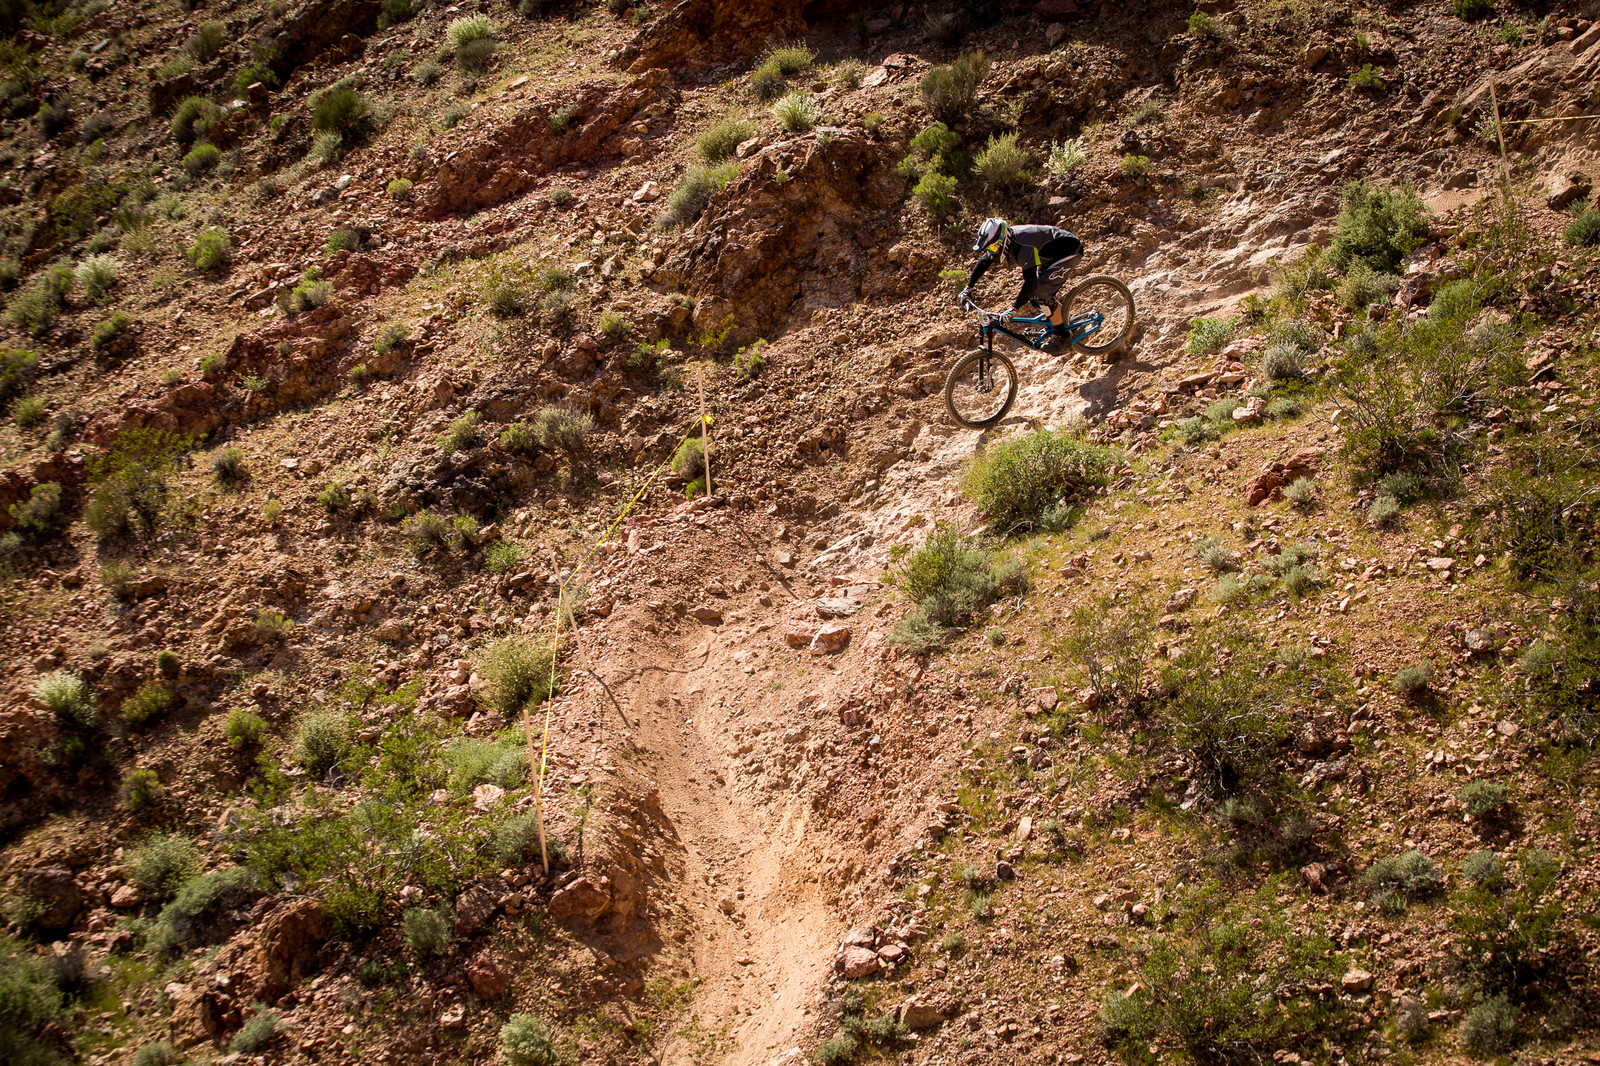 2017 Reaper Madness DH at Bootleg Canyon-6 - 2017 Reaper Madness DH Photos - Mountain Biking Pictures - Vital MTB